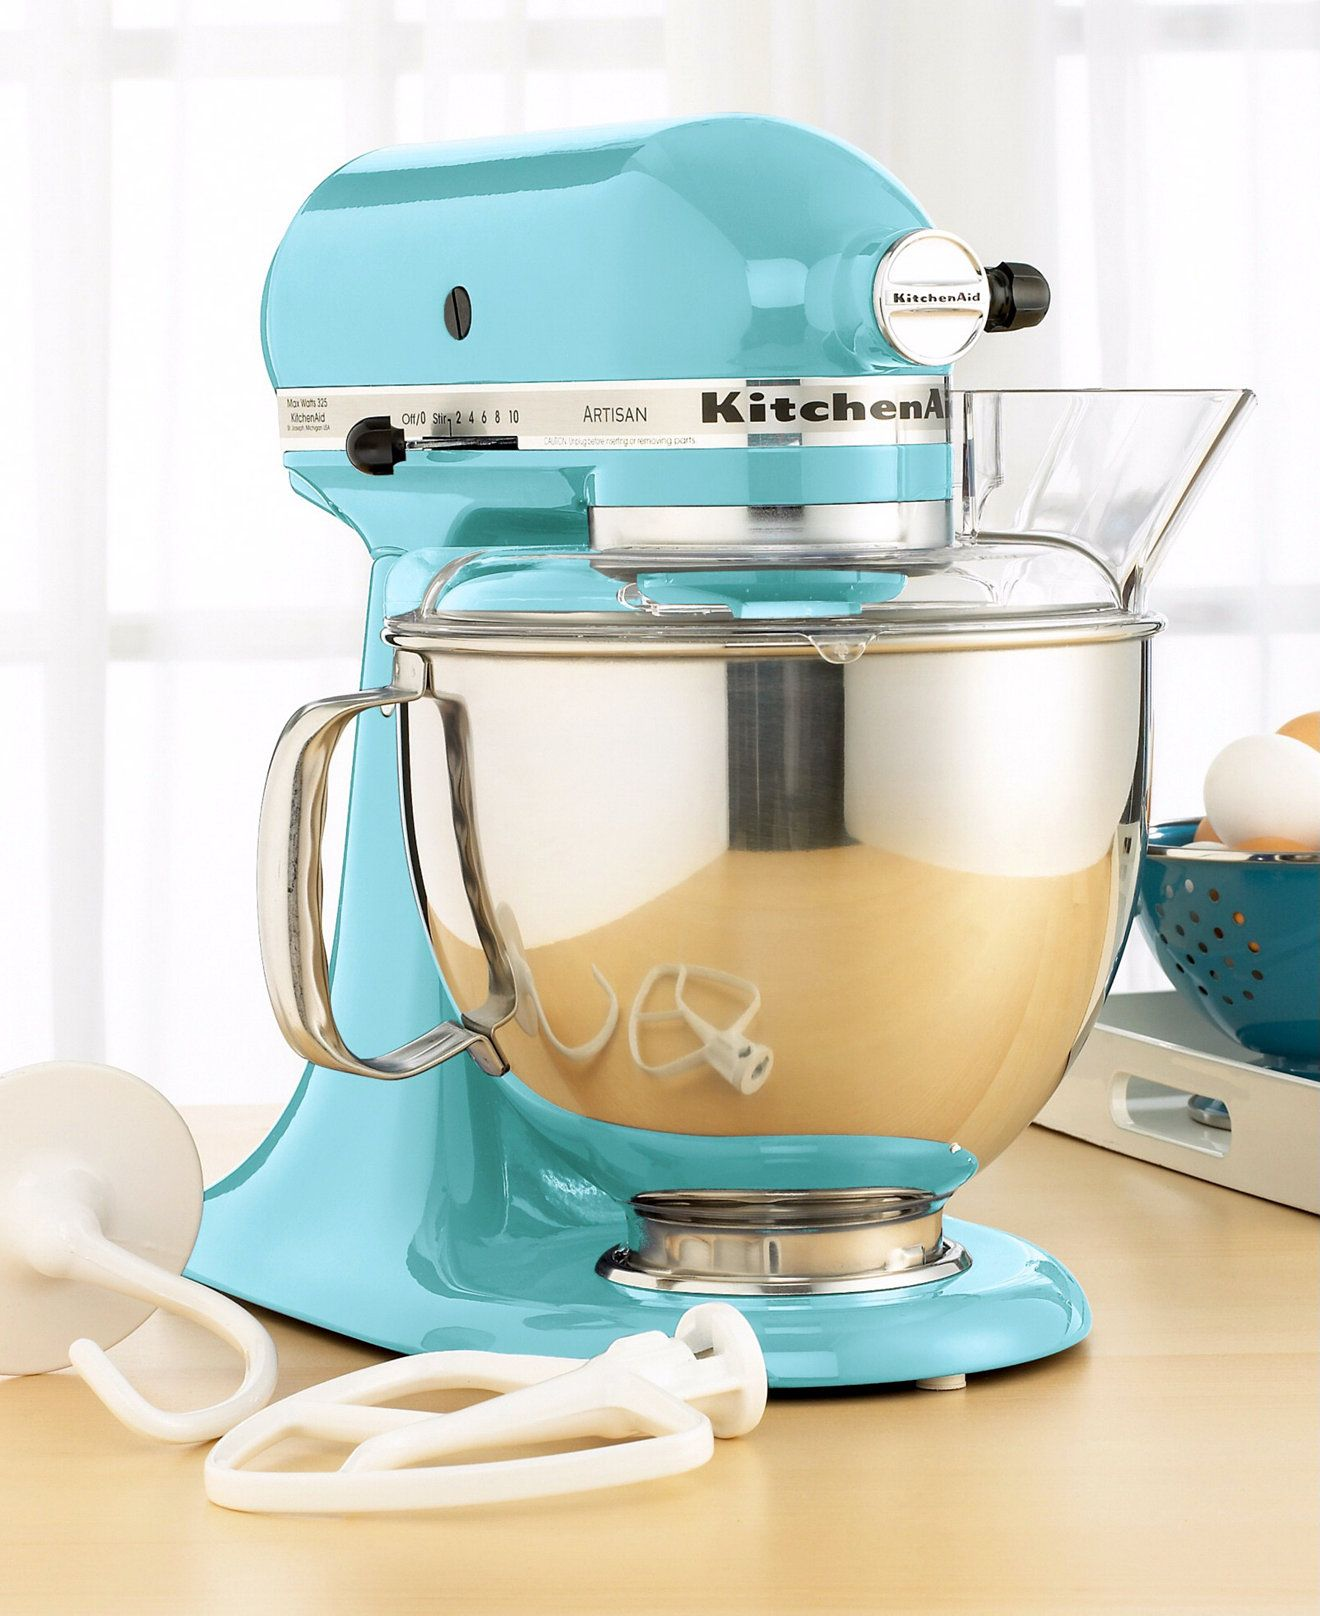 Charming Kitchenaid Artisan 5 Qt Stand Mixer In Aqua Sky Everything